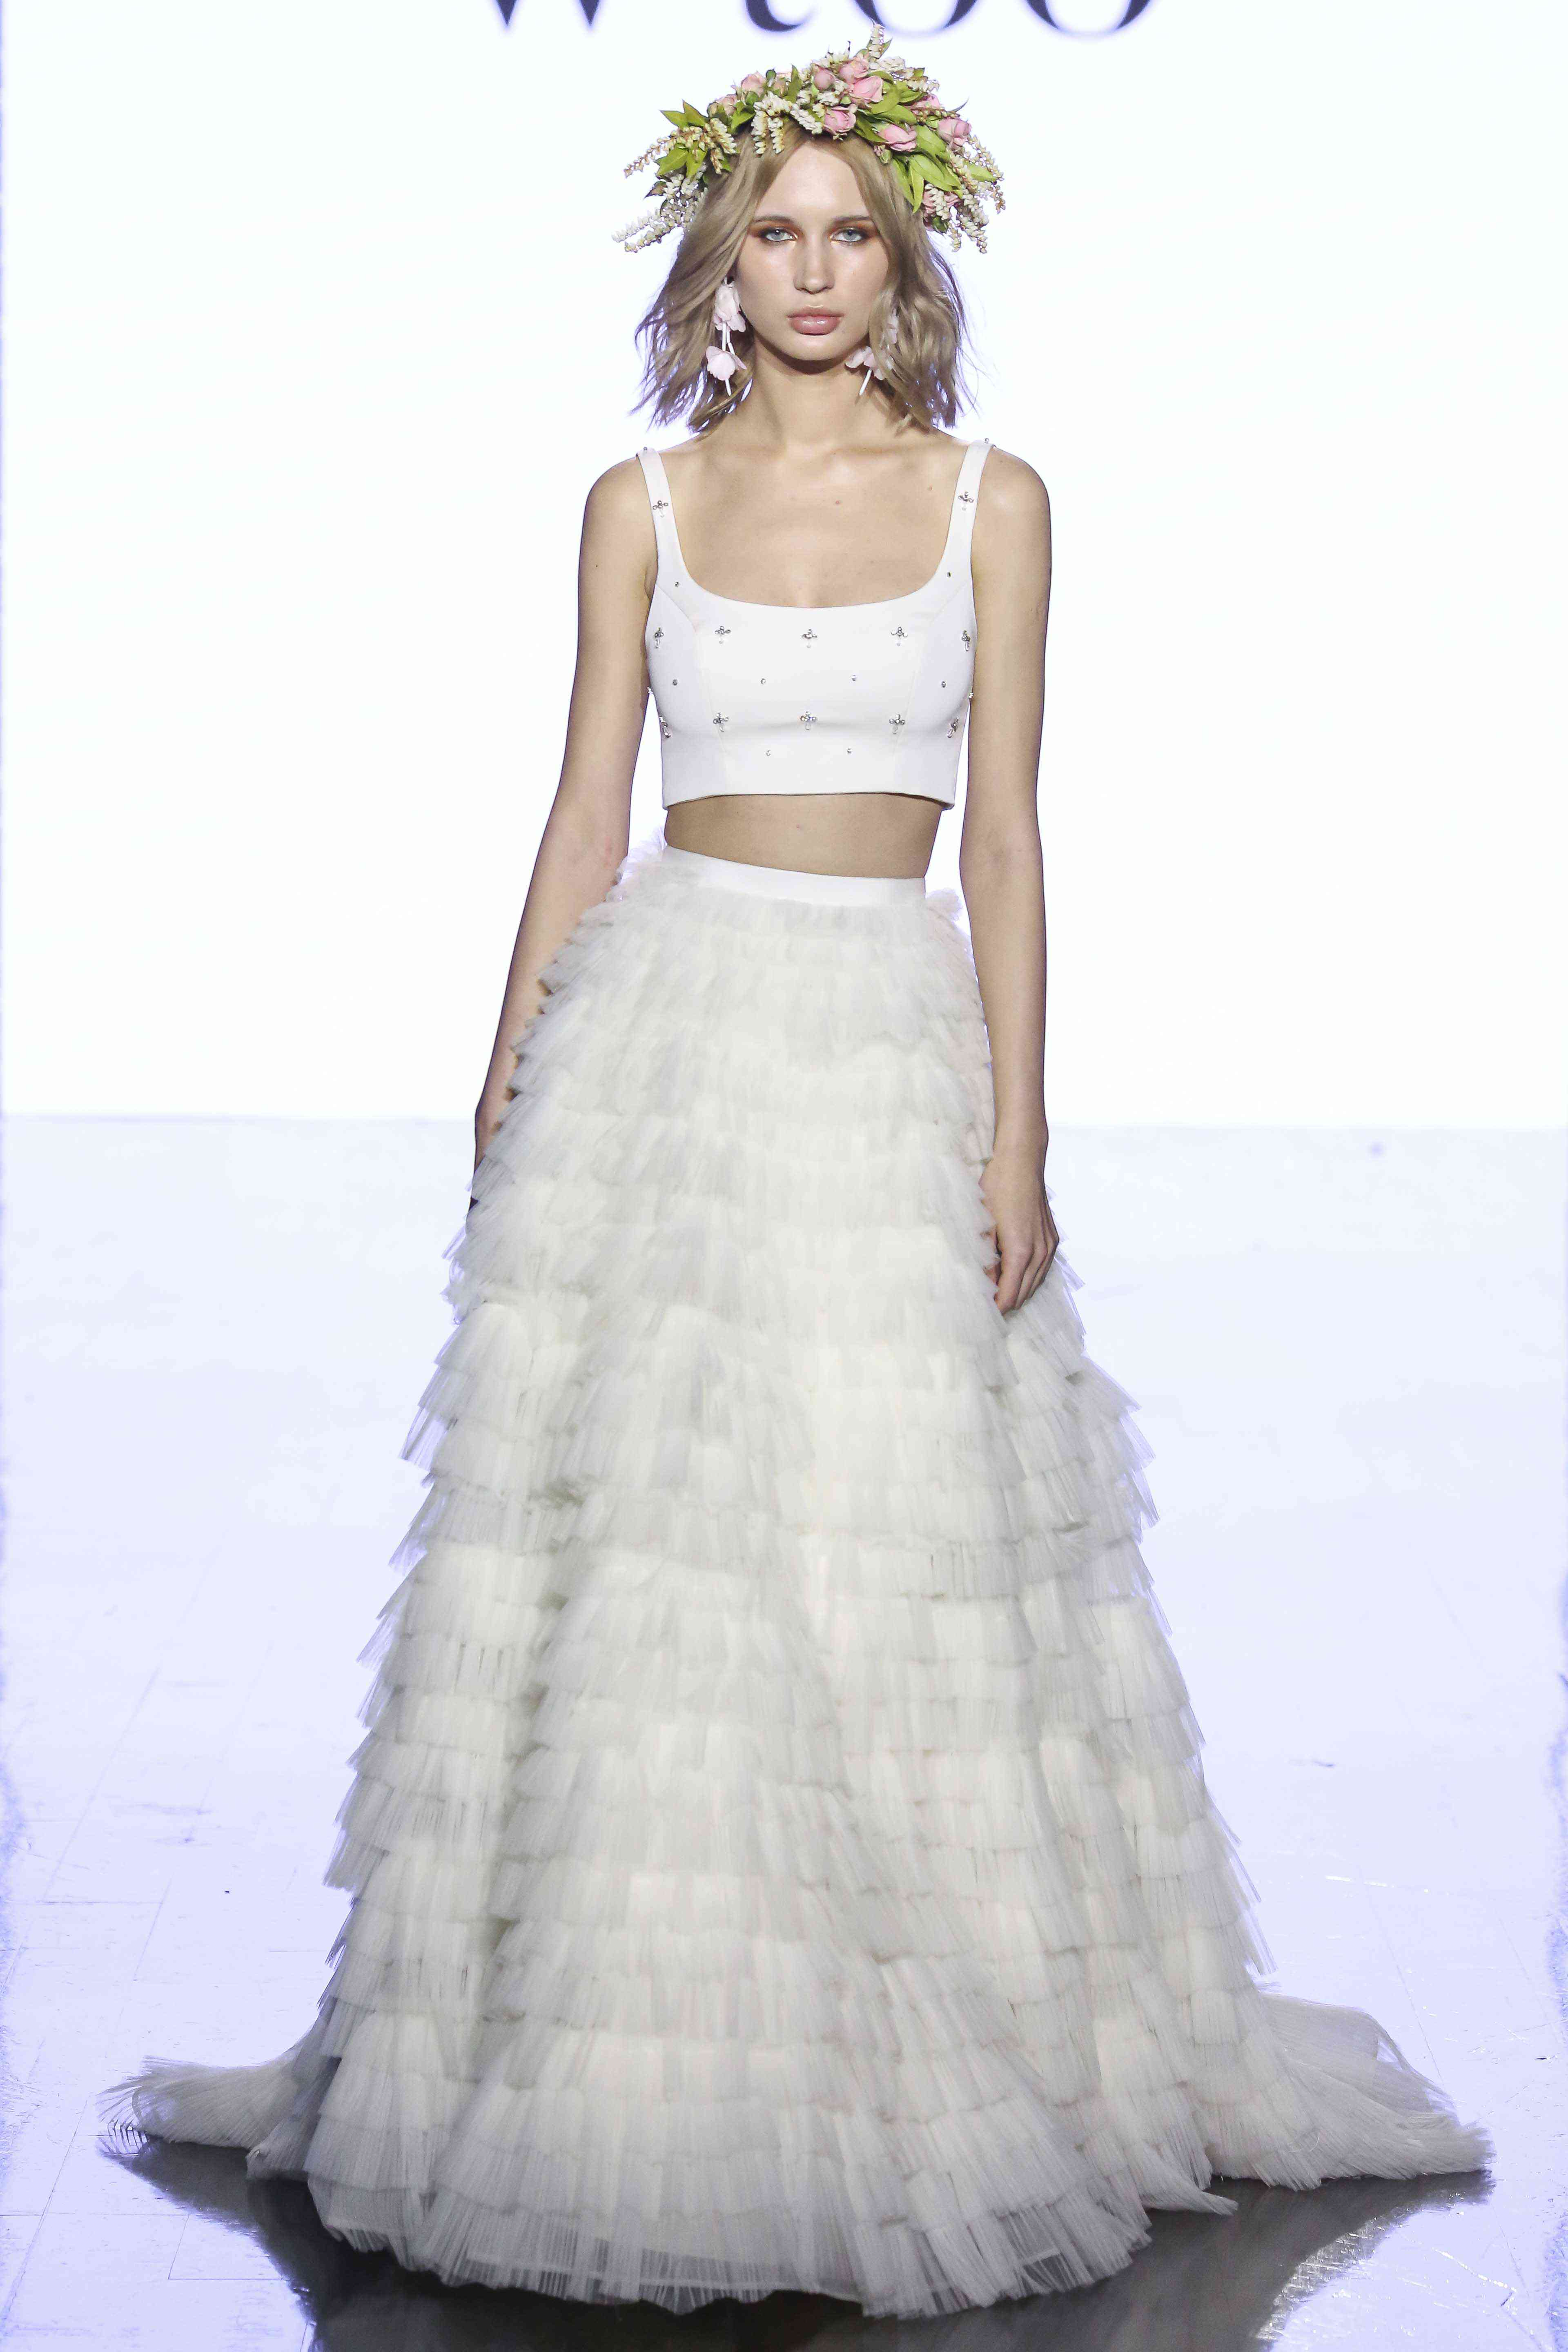 Model in beaded crop top with a layered tulle ball skirt